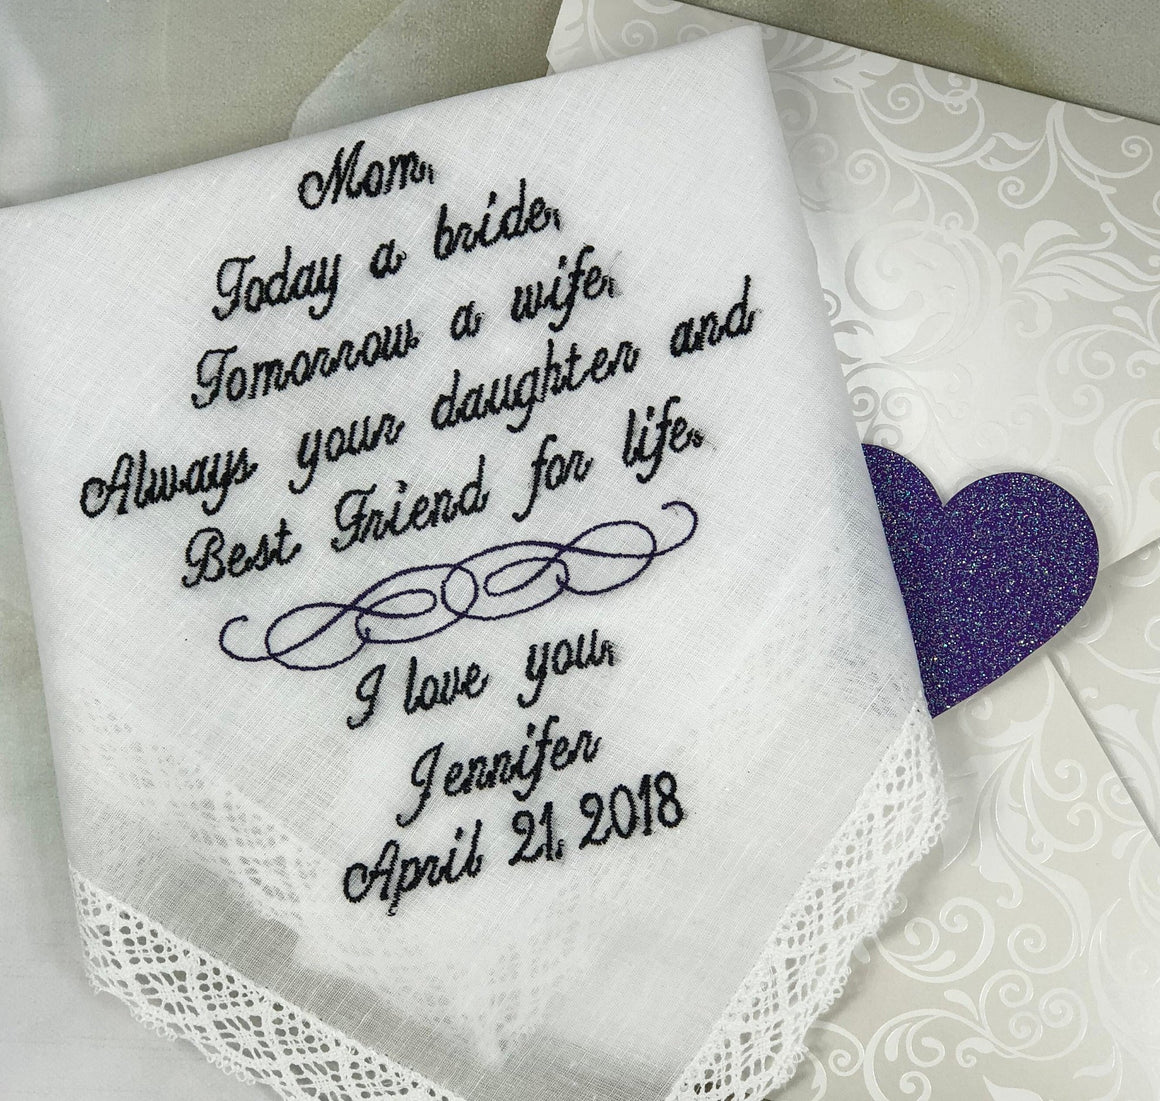 Mother Of The Bride Handkerchief - Today a Bride, Tomorrow a Wife, Best Friend for Life-Mother Of The Bride Hankerchief-Wedding Handkerchief